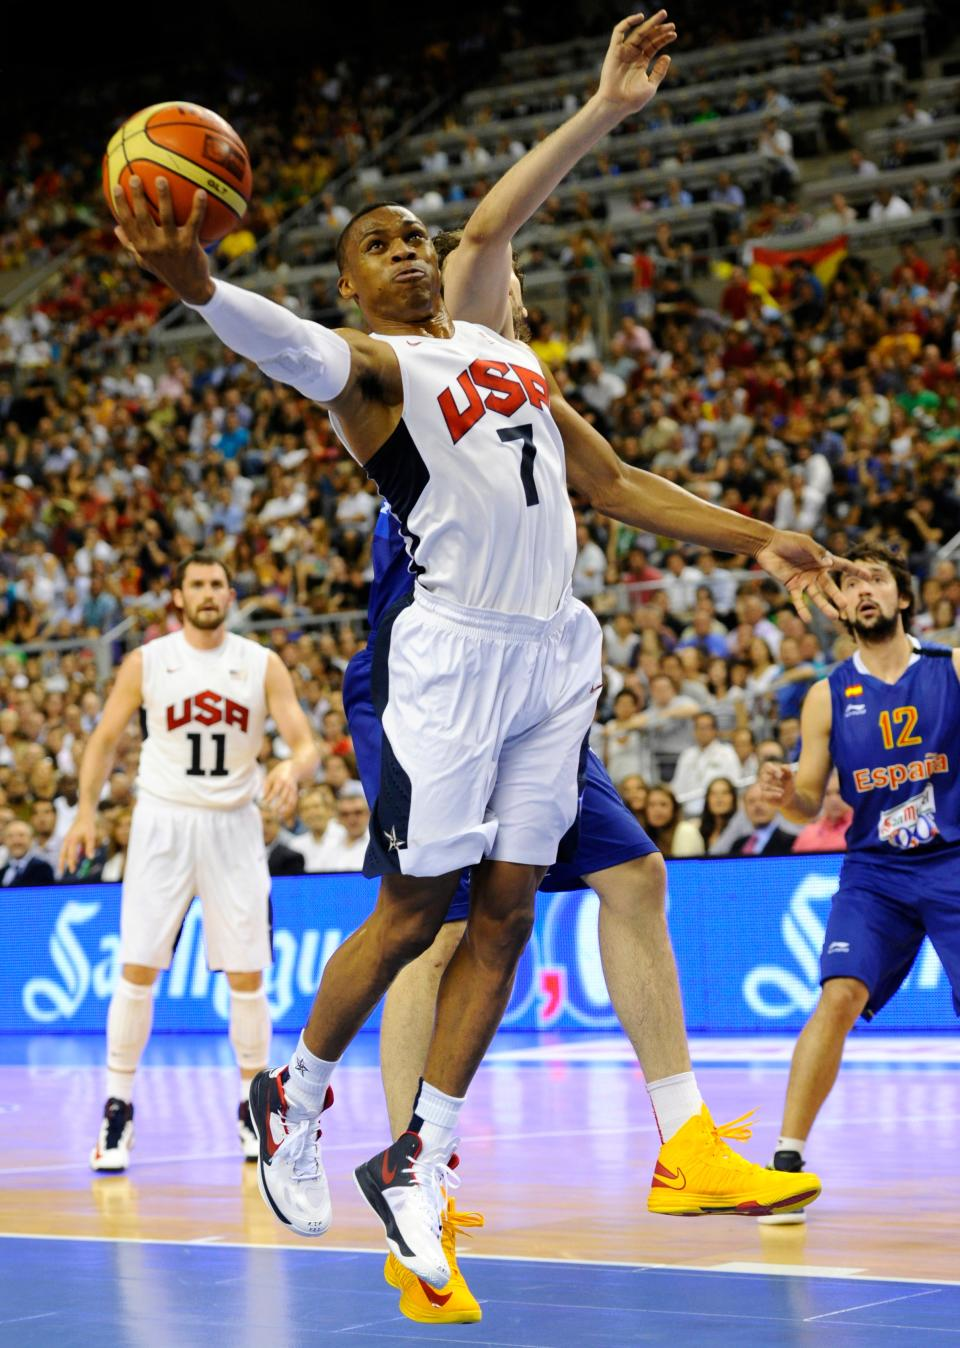 Russell Westbrook of the US Men's Senior National Team, left, jumps for the ball during an exhibition match between Spain and the United States Tuesday, July 24, 2012, in Barcelona, Spain, in preparation for the 2012 Summer Olympics. (AP Photo/Manu Fernandez)